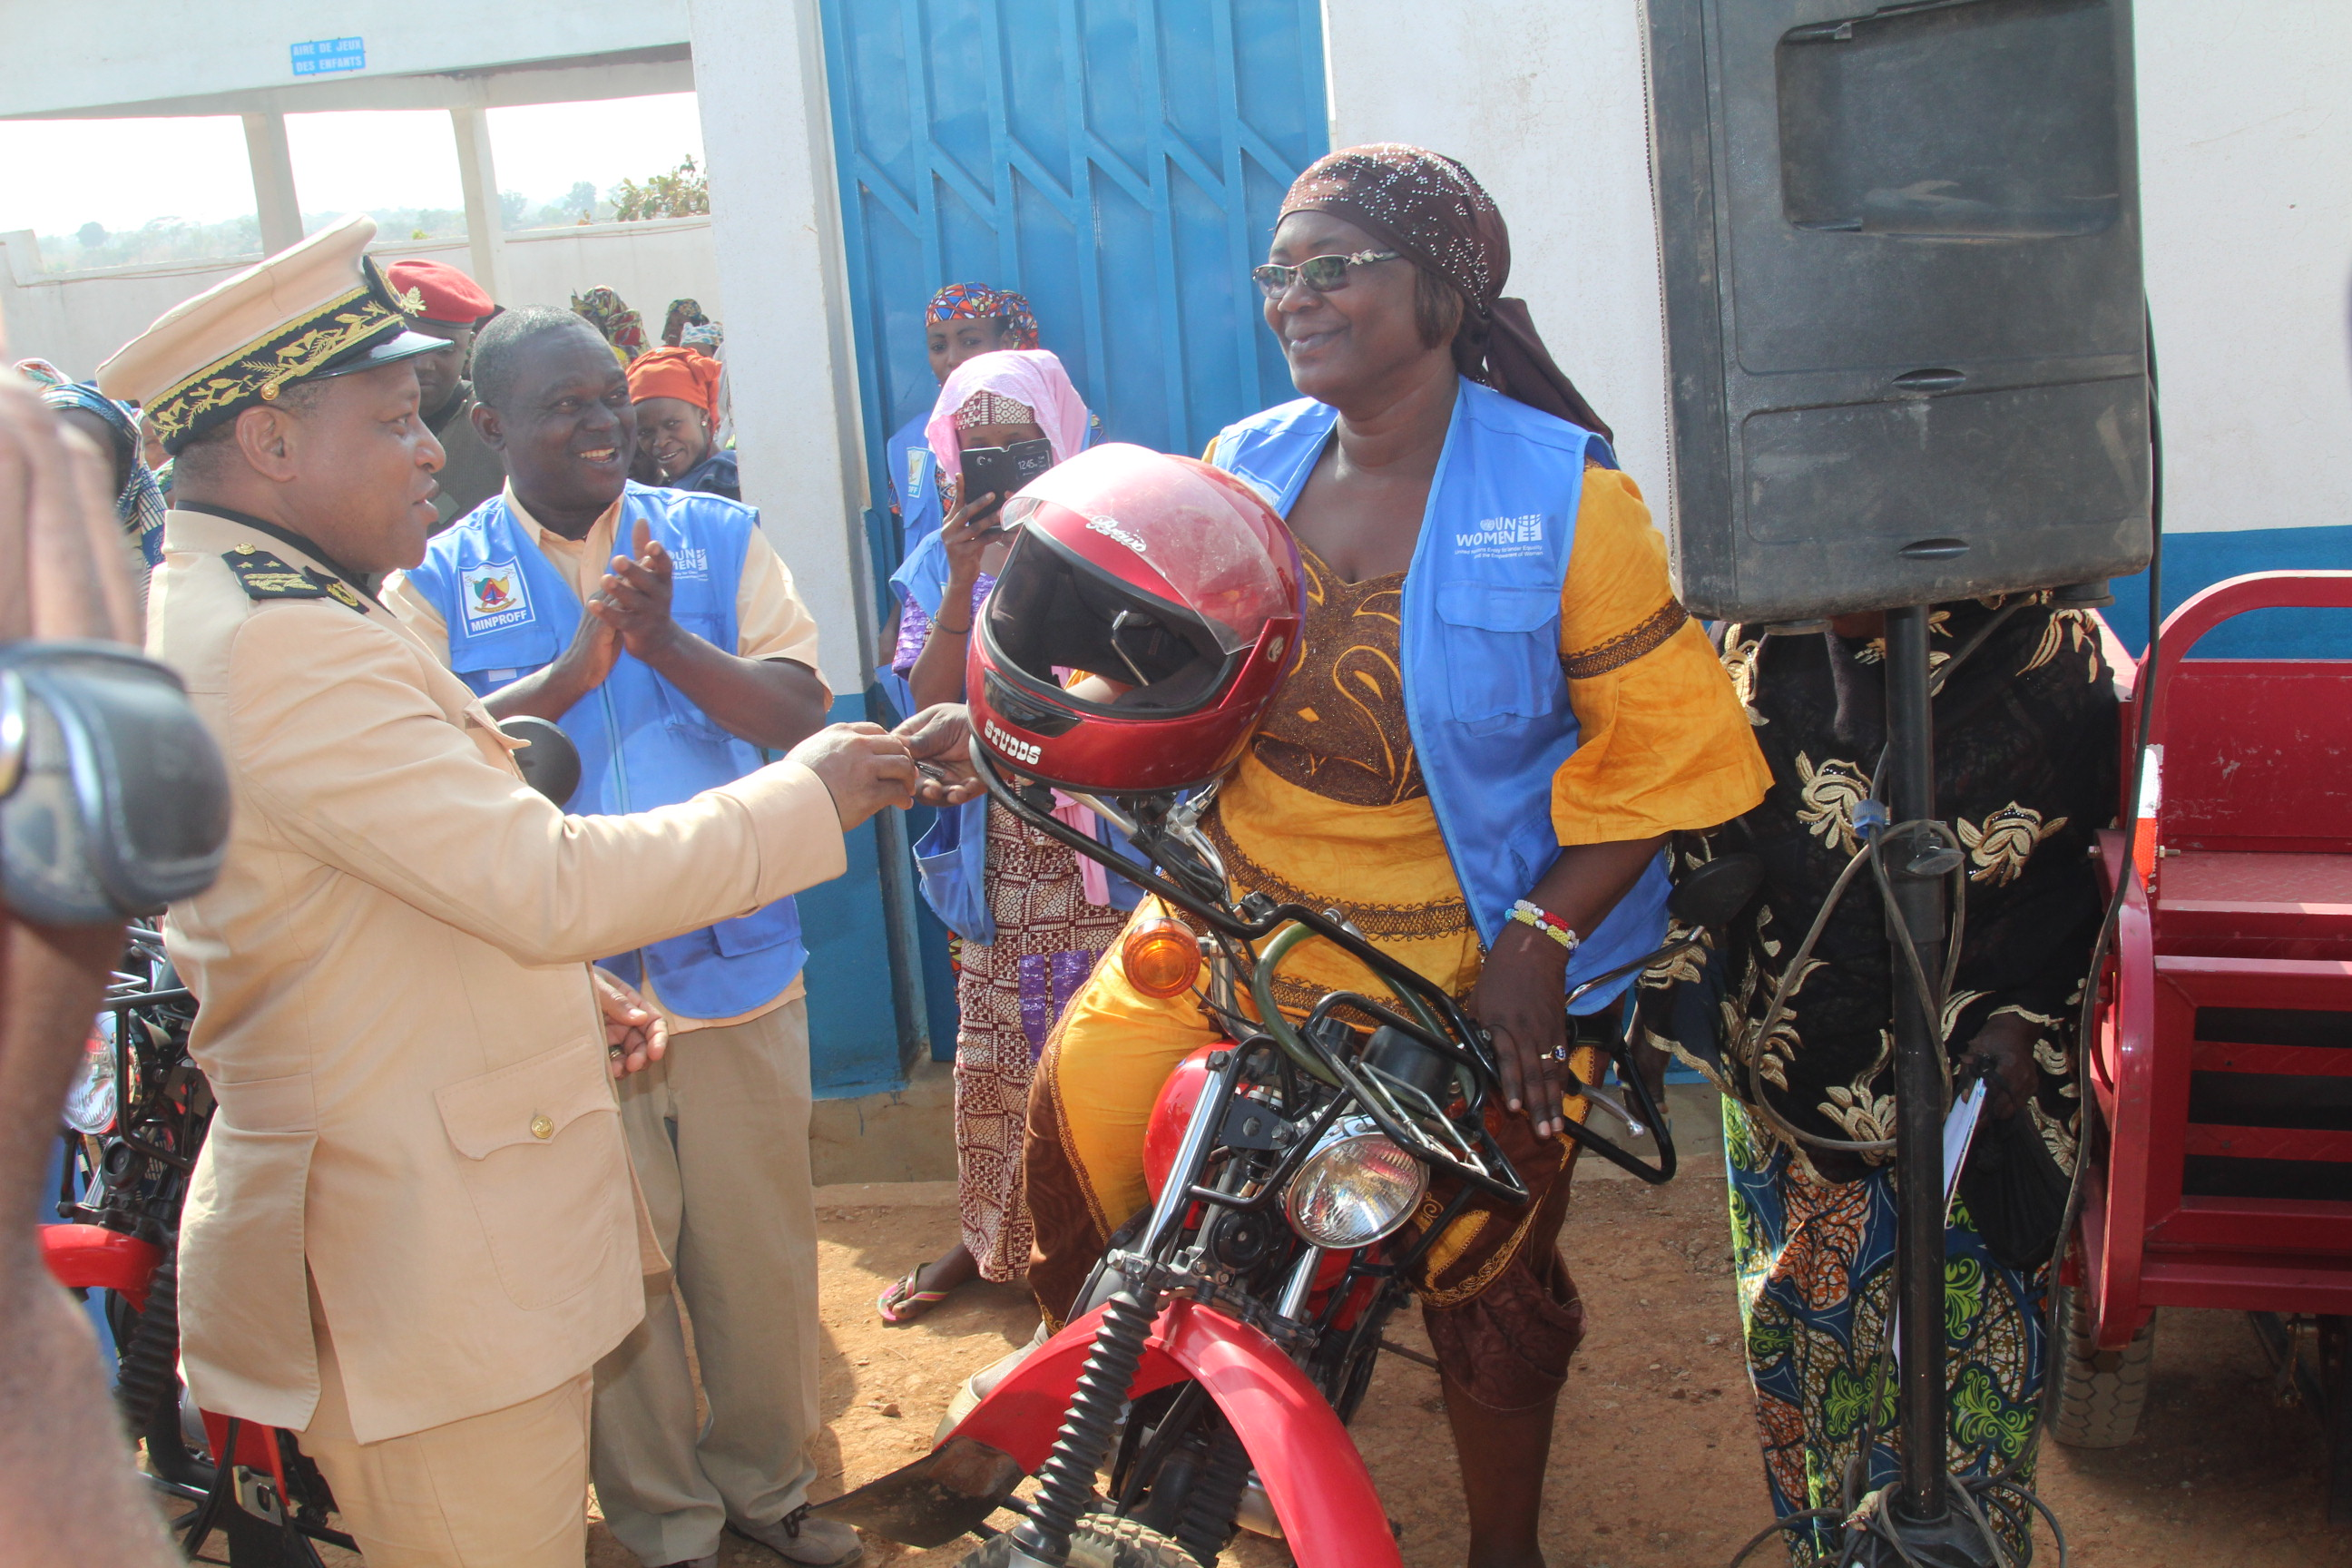 Worker at WCS receives keys of Motocycle from Divisional Officer with joy. Photo credit: Fajong Joseph-UN Women